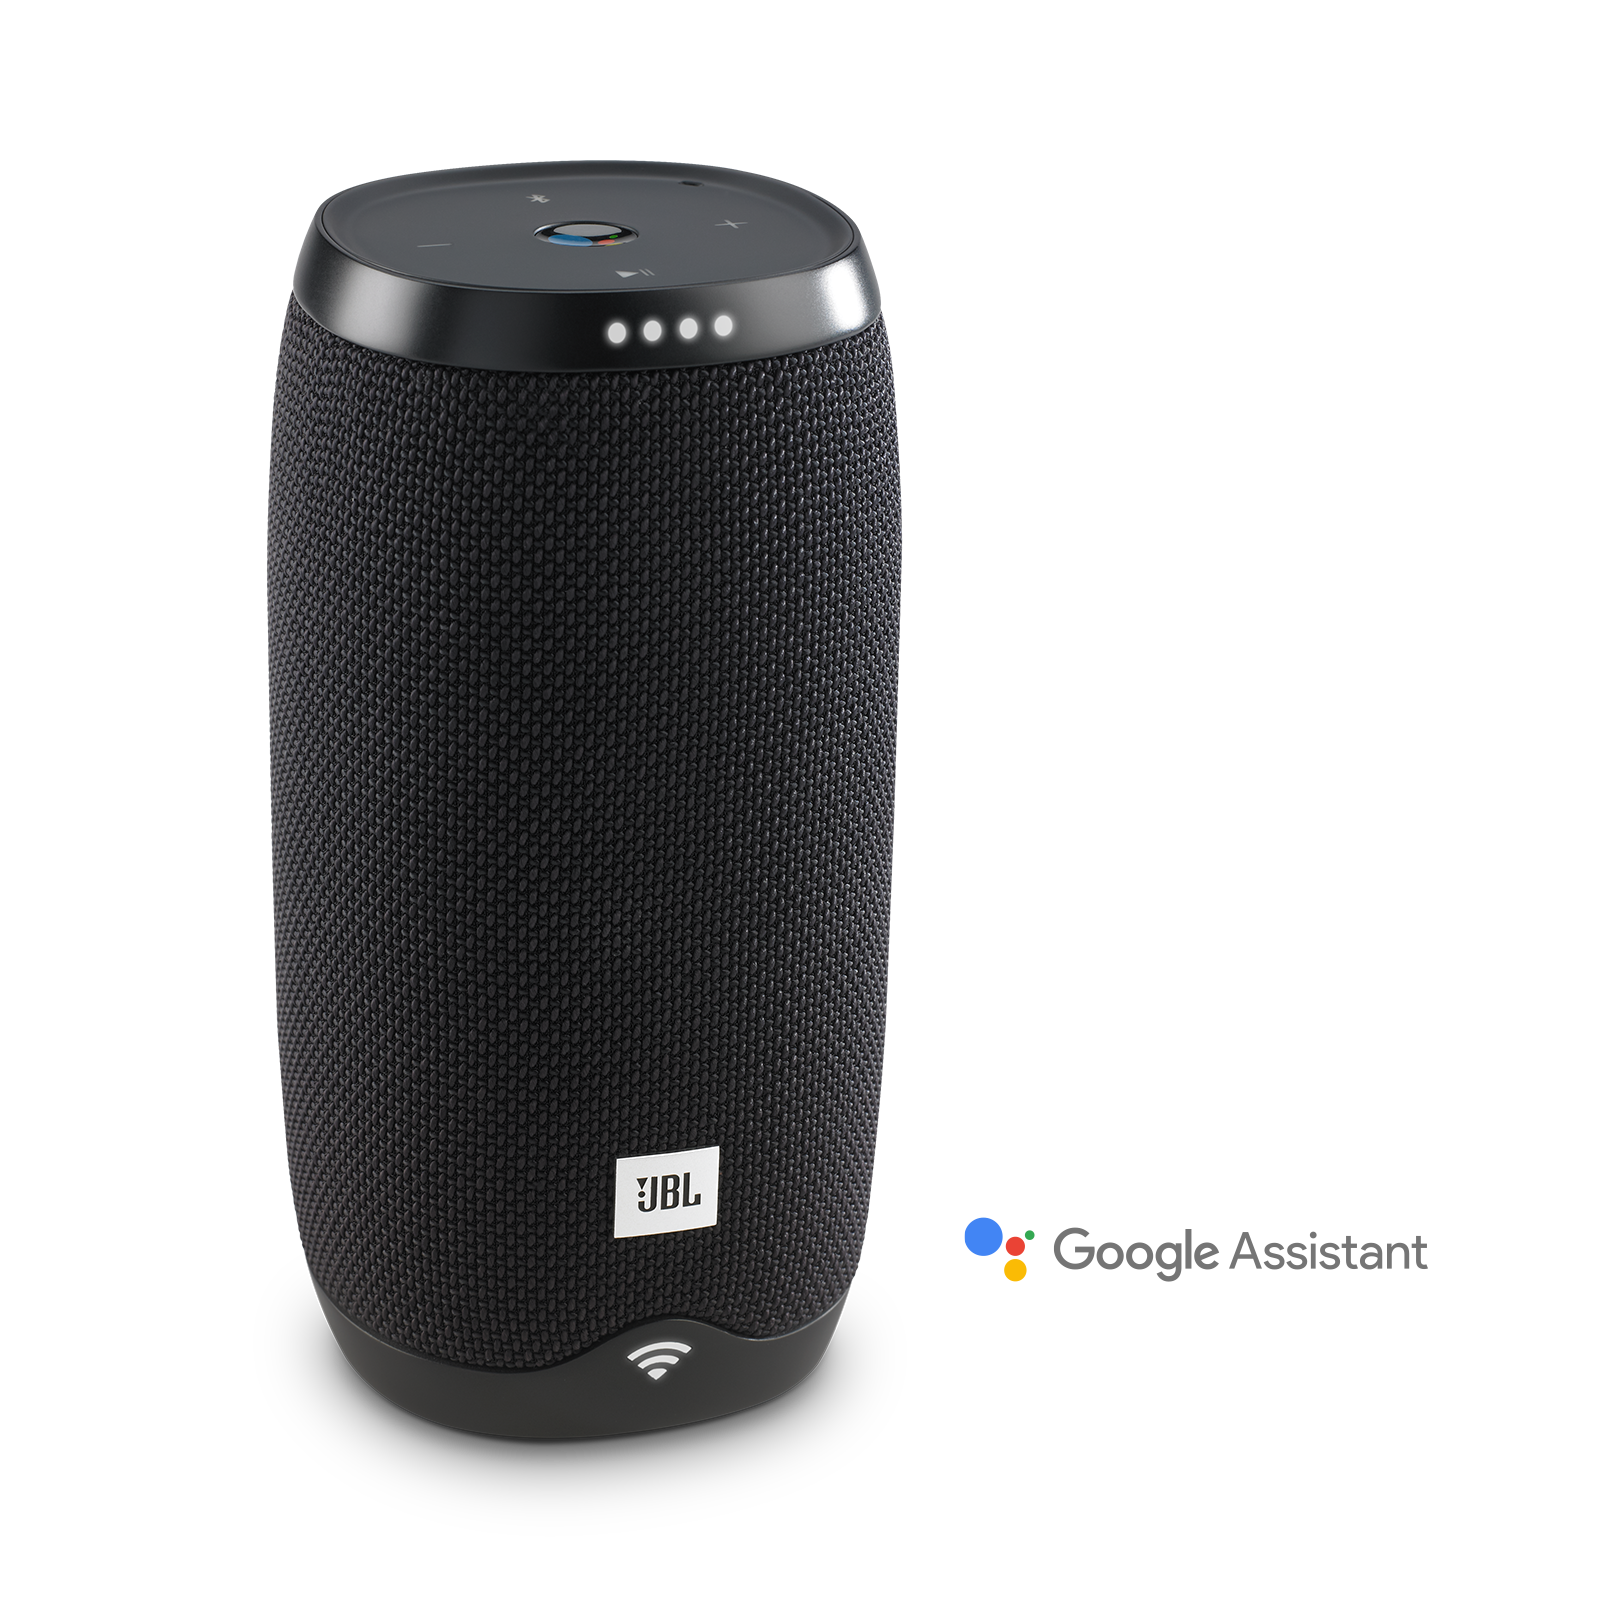 JBL Link 10 - Black - Voice-activated portable speaker - Hero